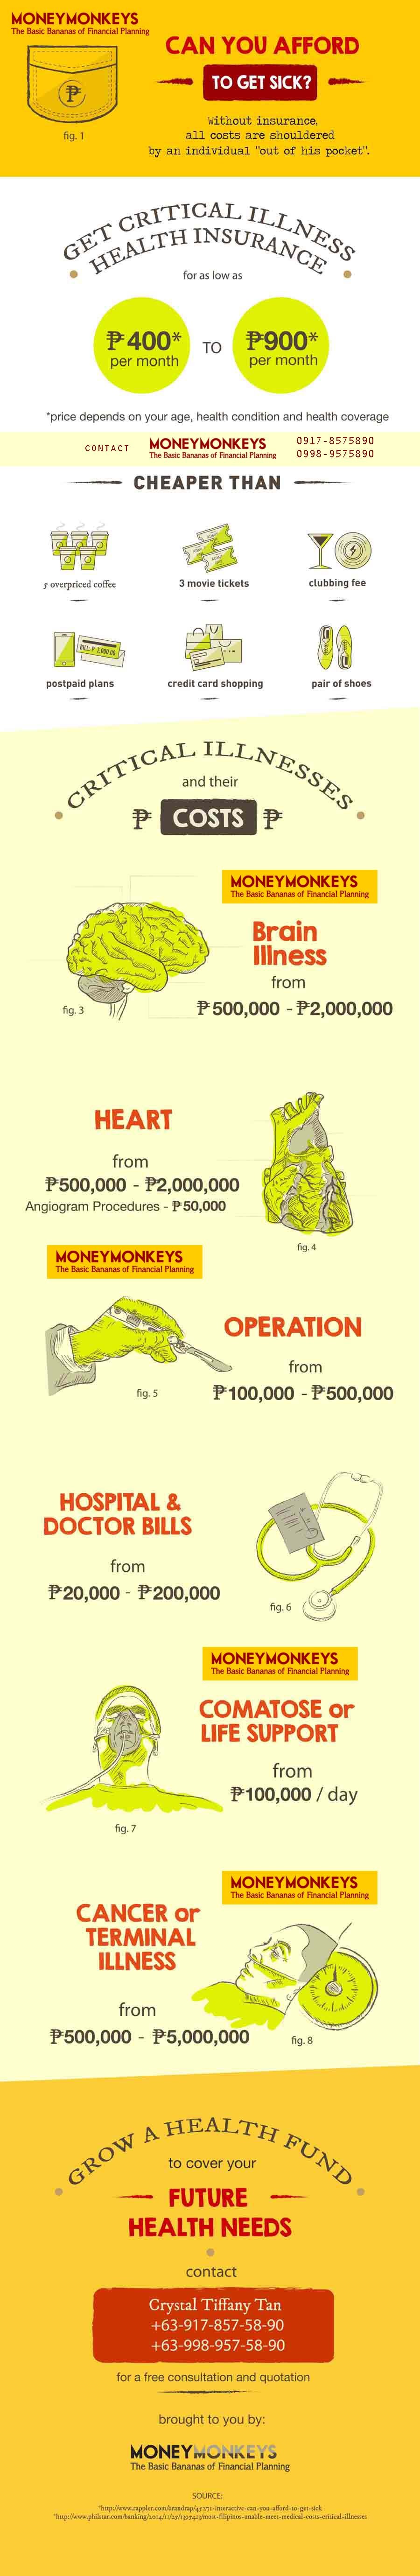 infographic_can you afford to get sick_FINAL